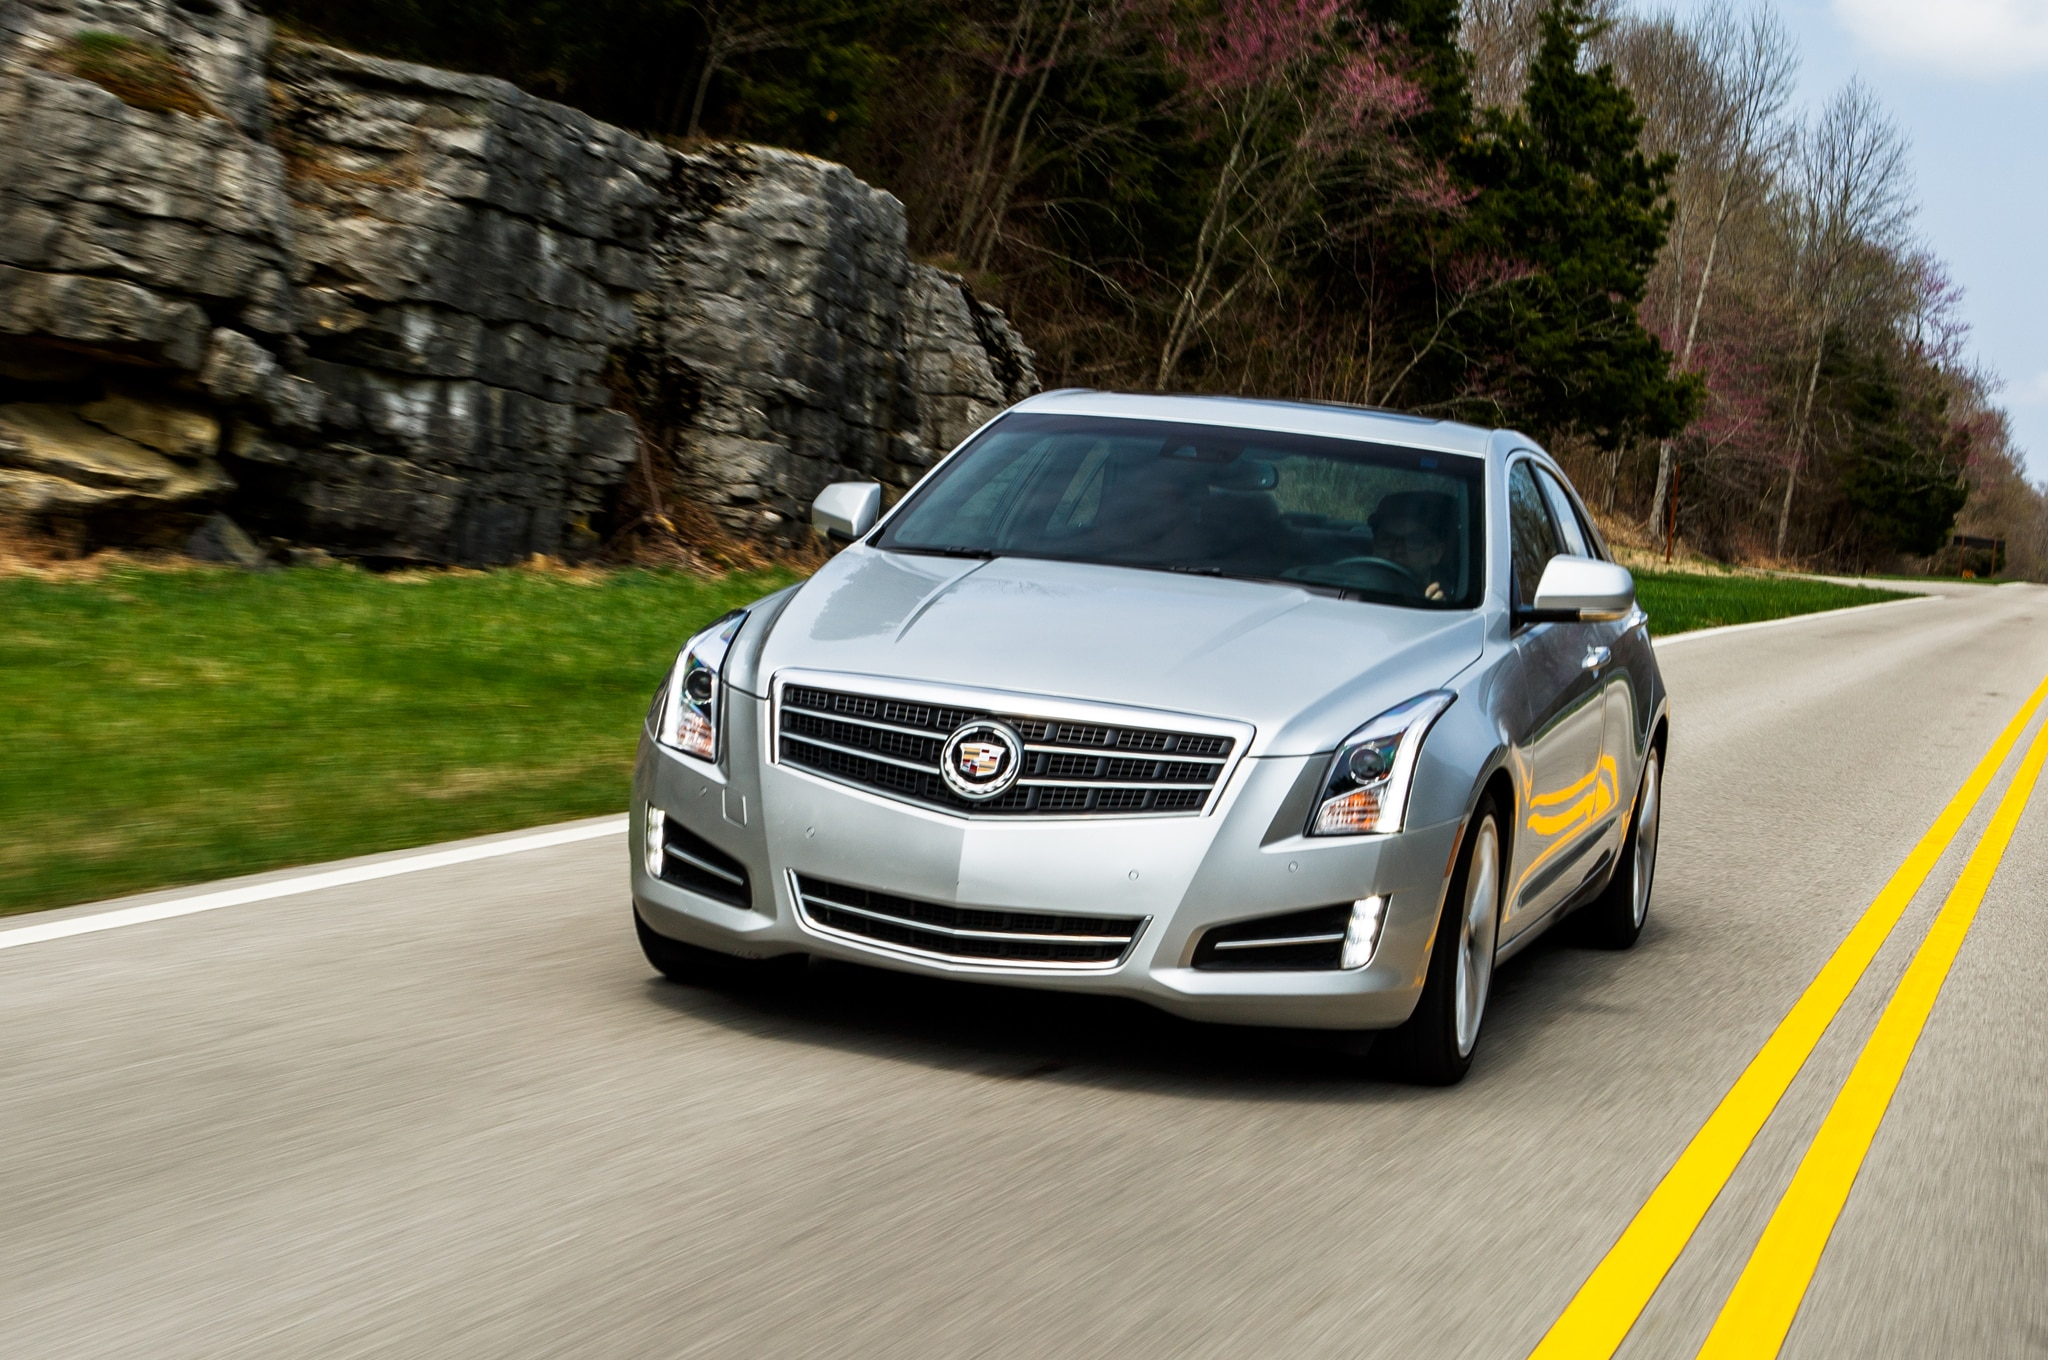 2013 Cadillac ATS - Four Seasons Wrap-Up